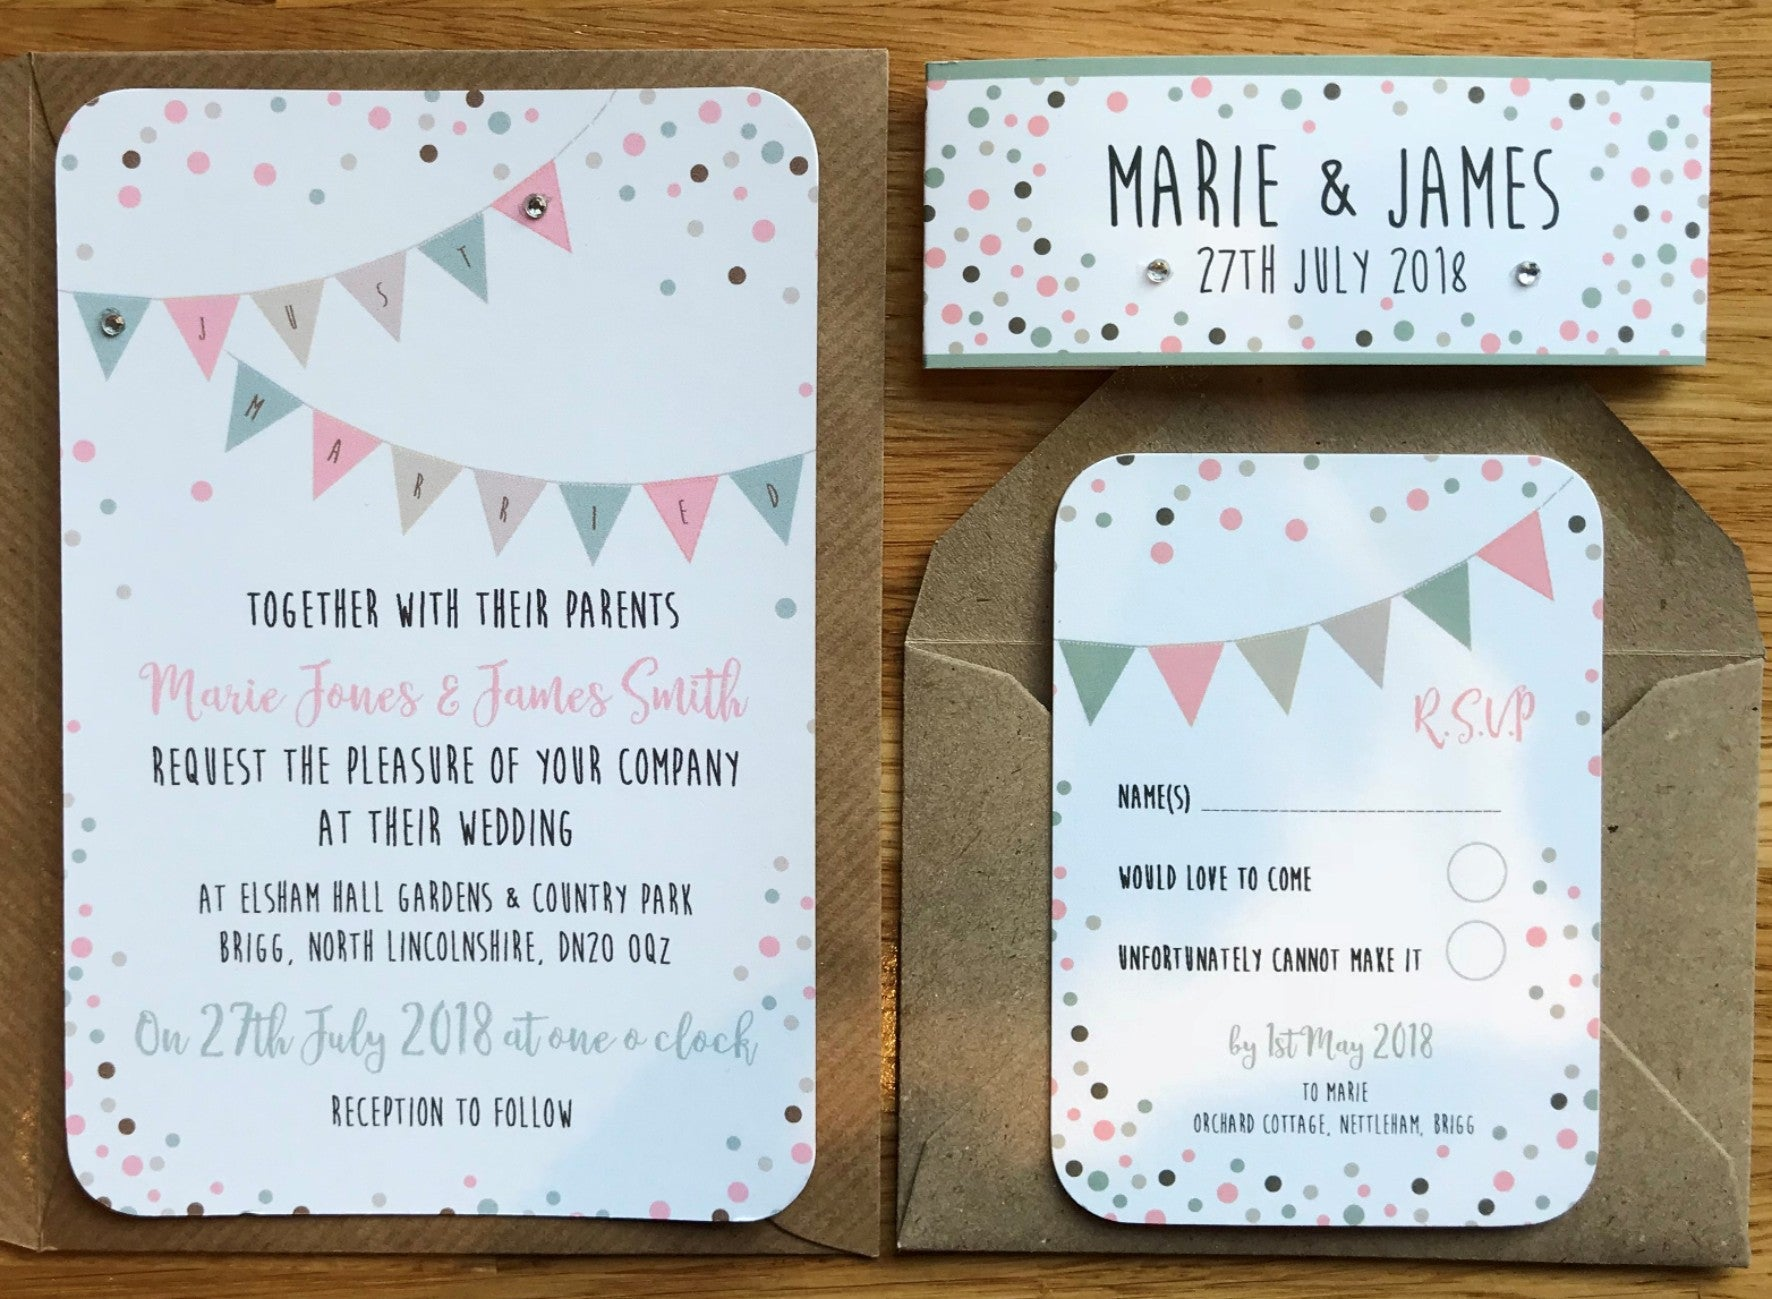 Vintage Bunting Dots Wedding Invitations Creative Cacti Designs